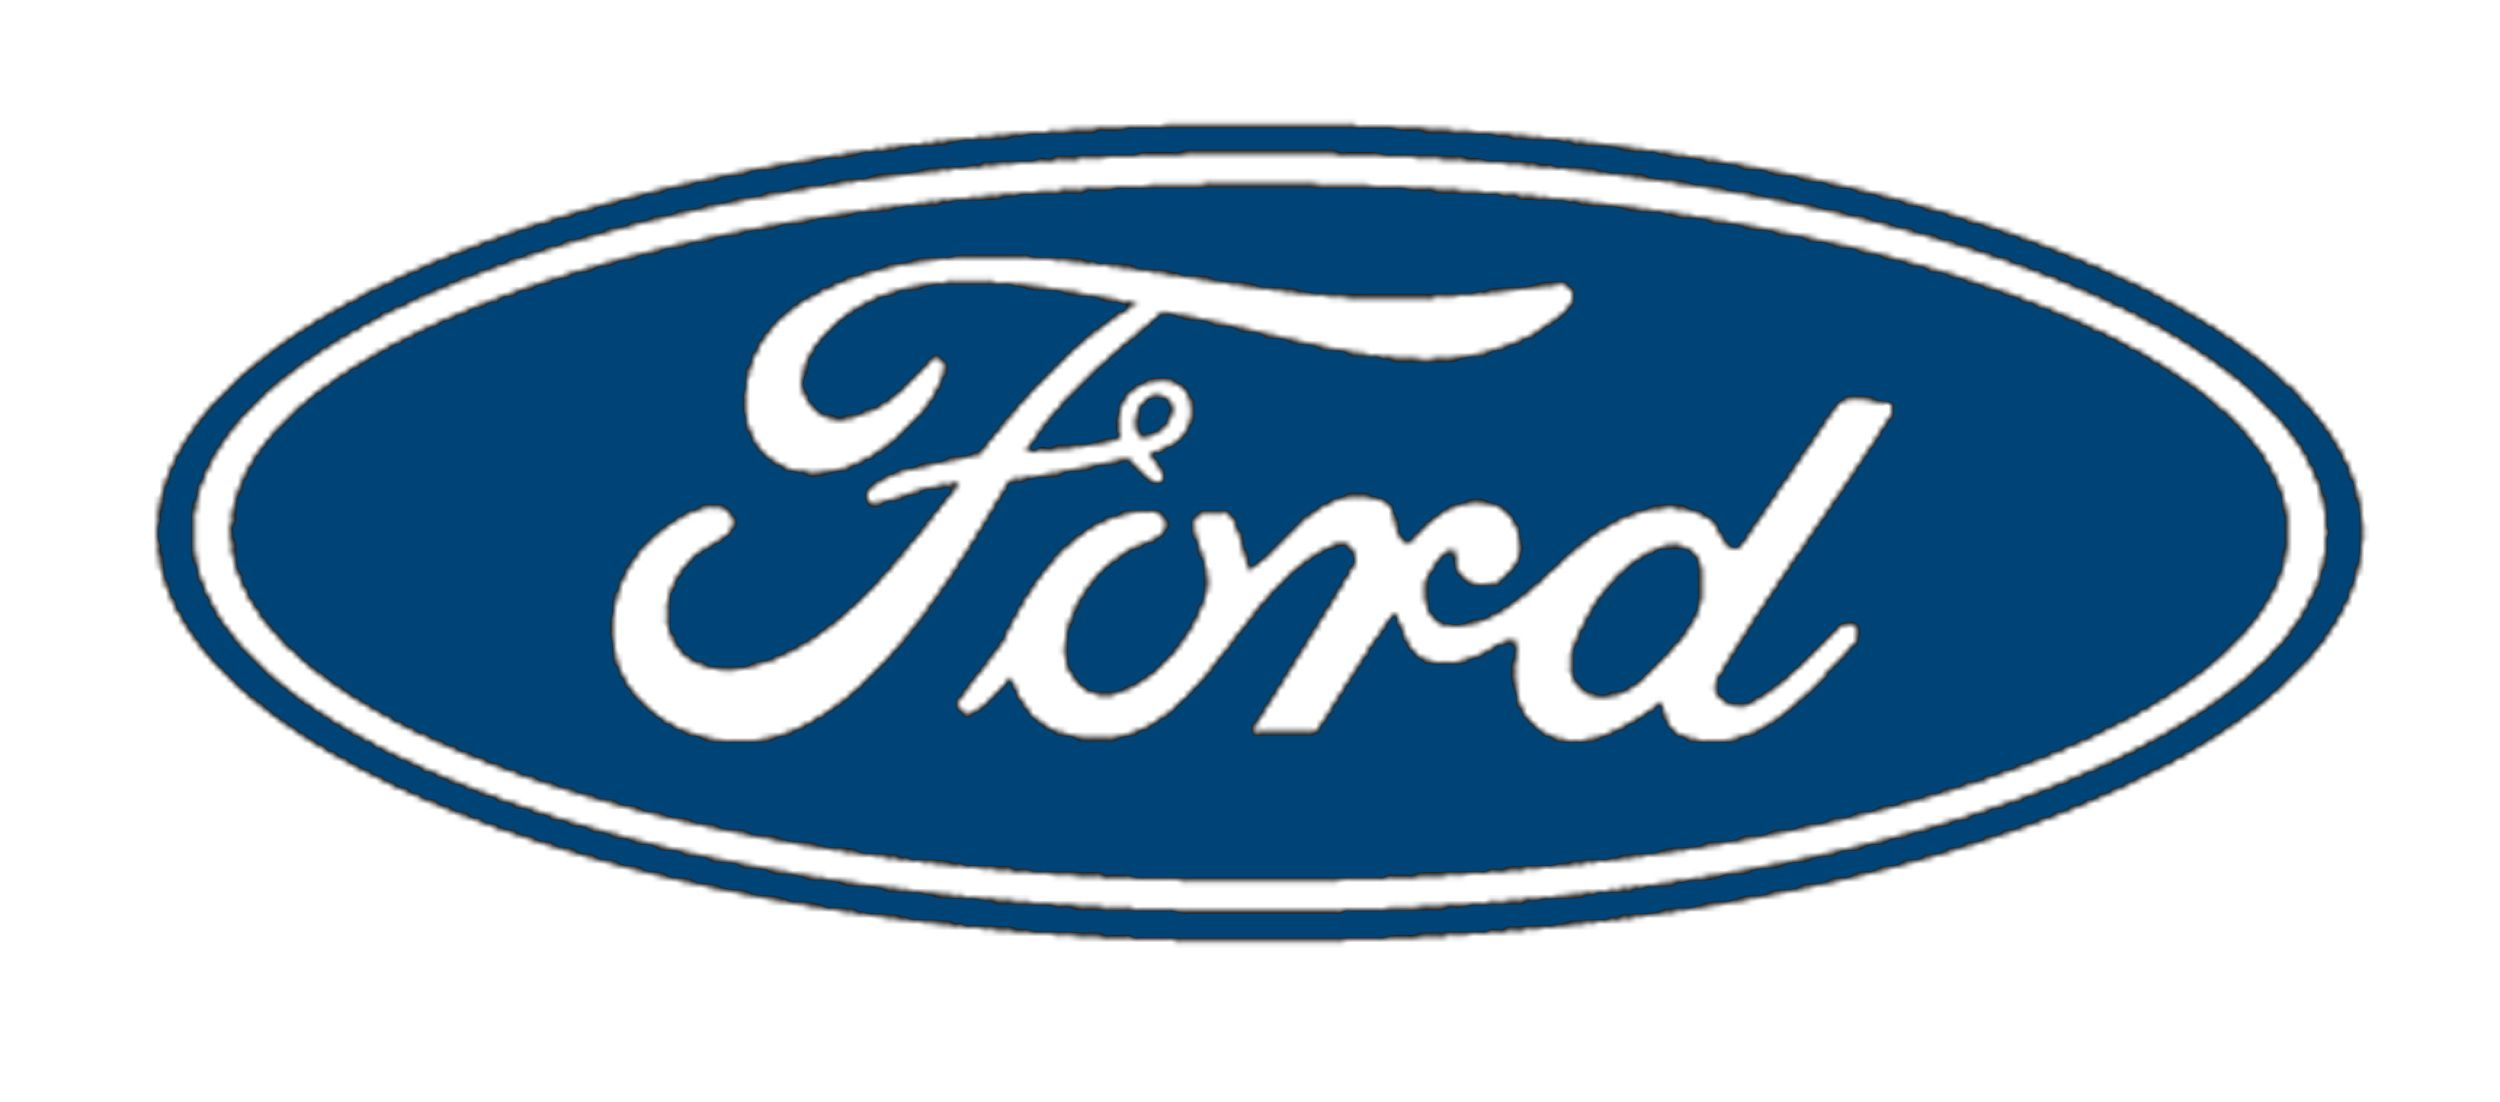 Ford Logo Ford Car Symbol Meaning And History Car Brand Names - Car sign with namespolskisport pictures of car brand logos with names